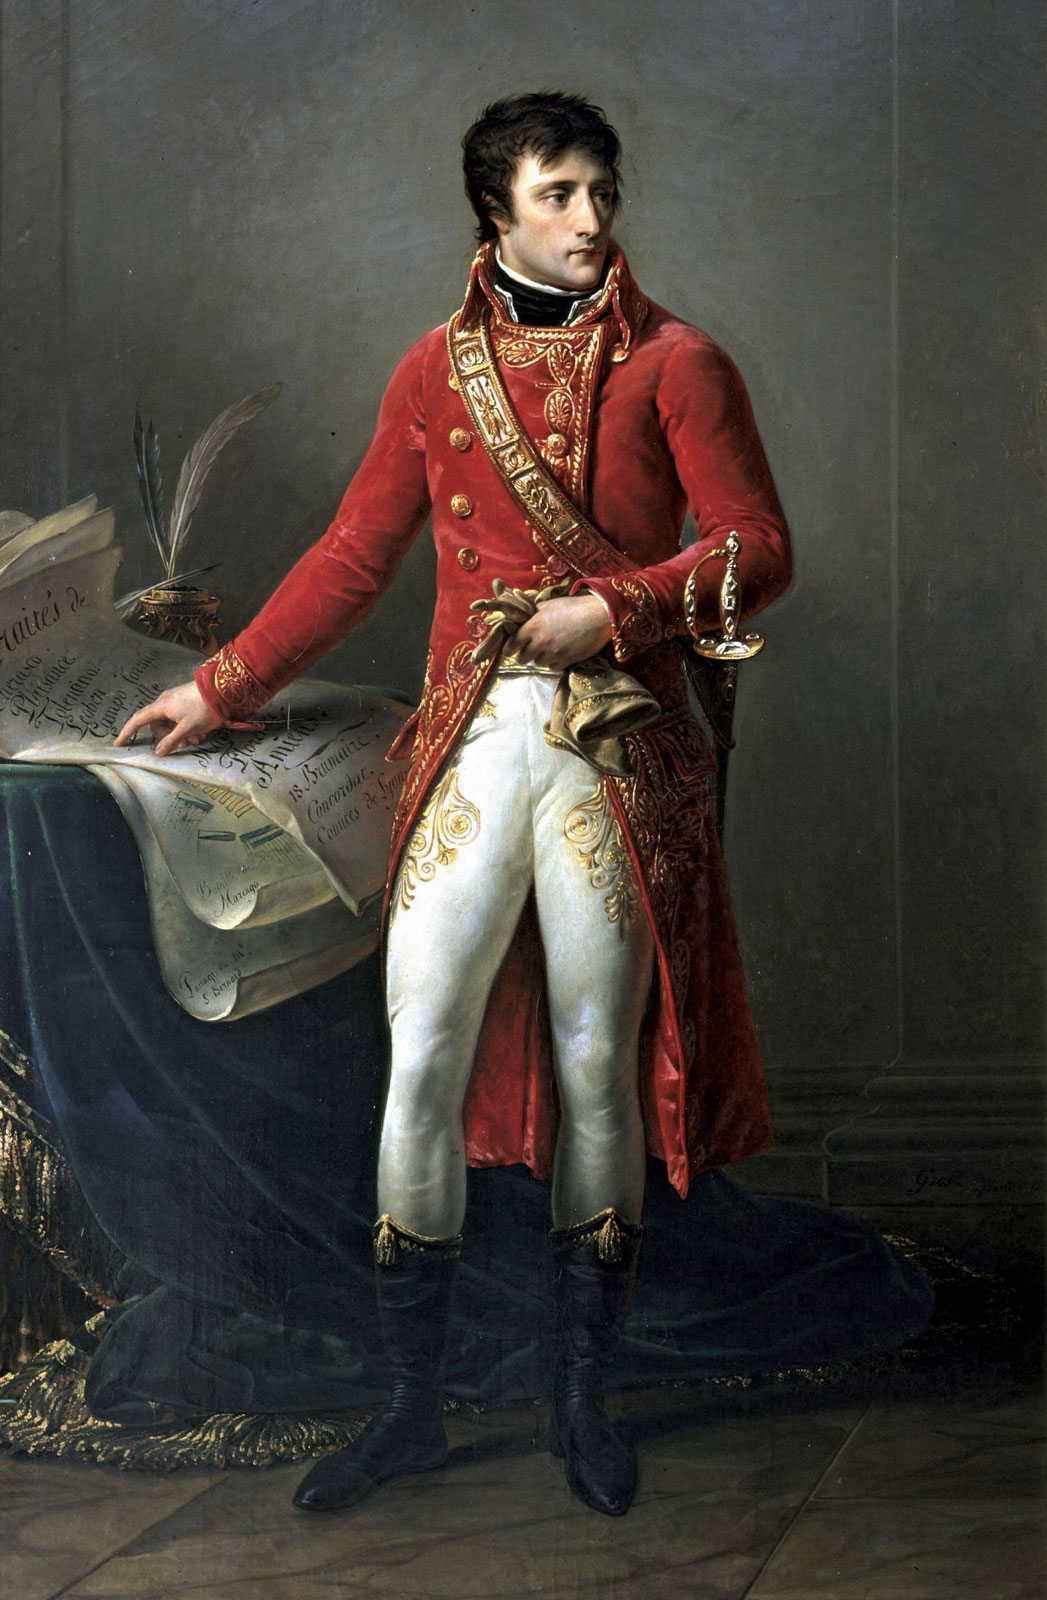 http://upload.wikimedia.org/wikipedia/commons/4/46/Gros_-_First_Consul_Bonaparte.png